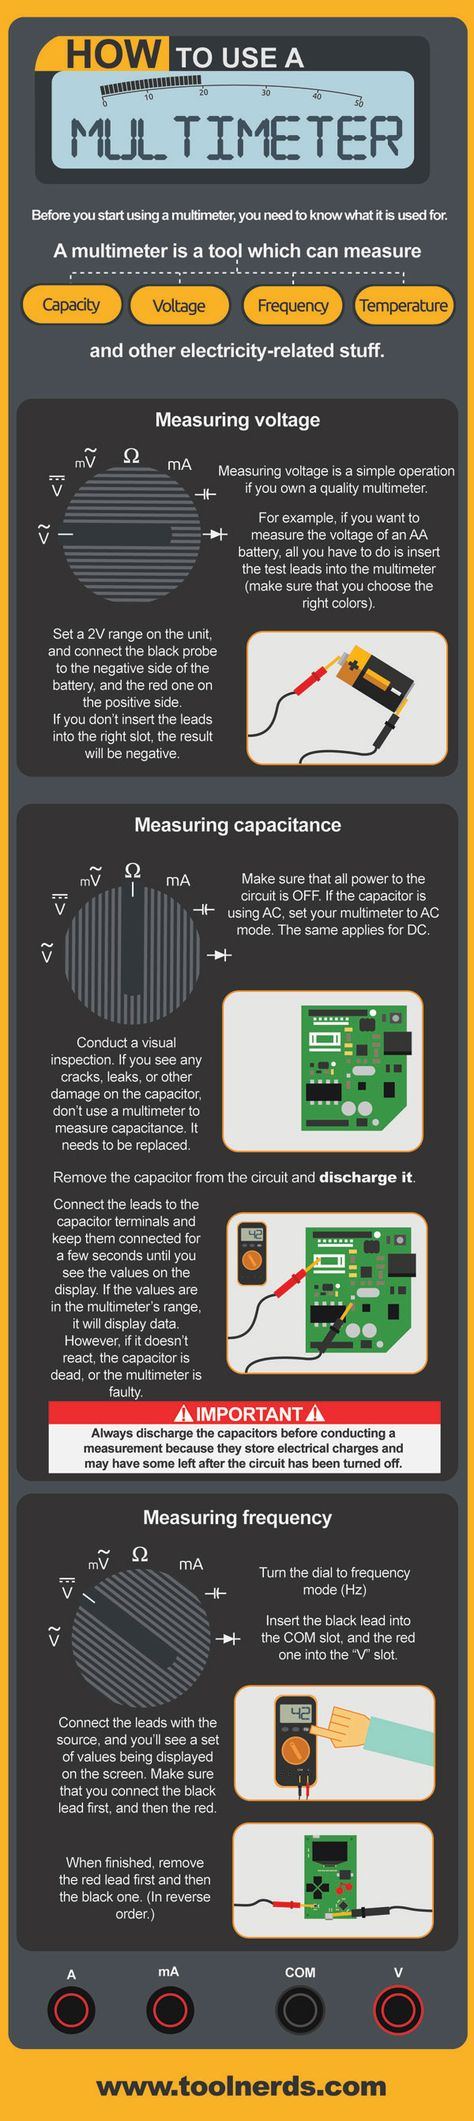 294 best multimeter usage images on pinterest tools electrical 294 best multimeter usage images on pinterest tools electrical engineering and electrical wiring biocorpaavc Image collections